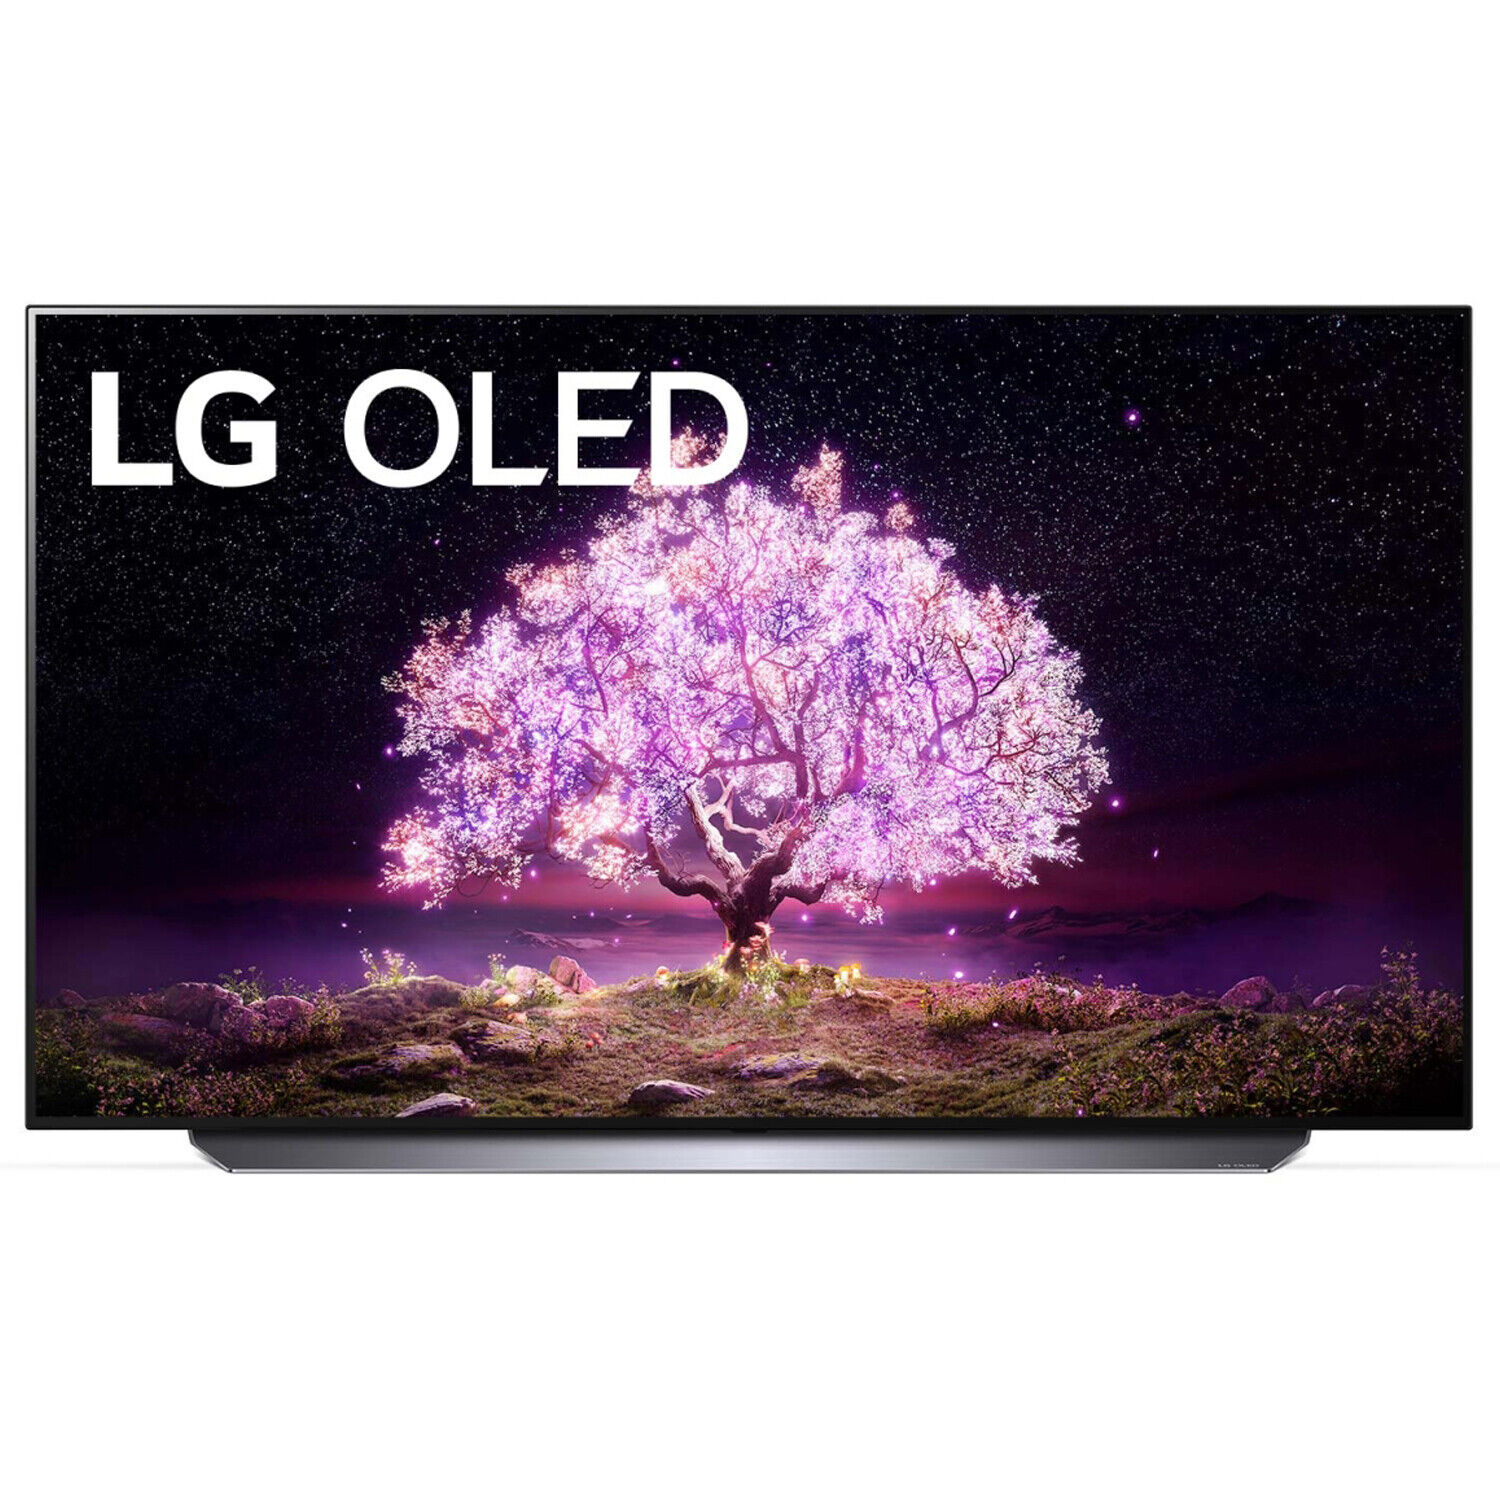 LG OLED77C1PUB 77 Inch 4K Smart OLED TV with AI ThinQ (2021 Model). Available Now for 3796.99